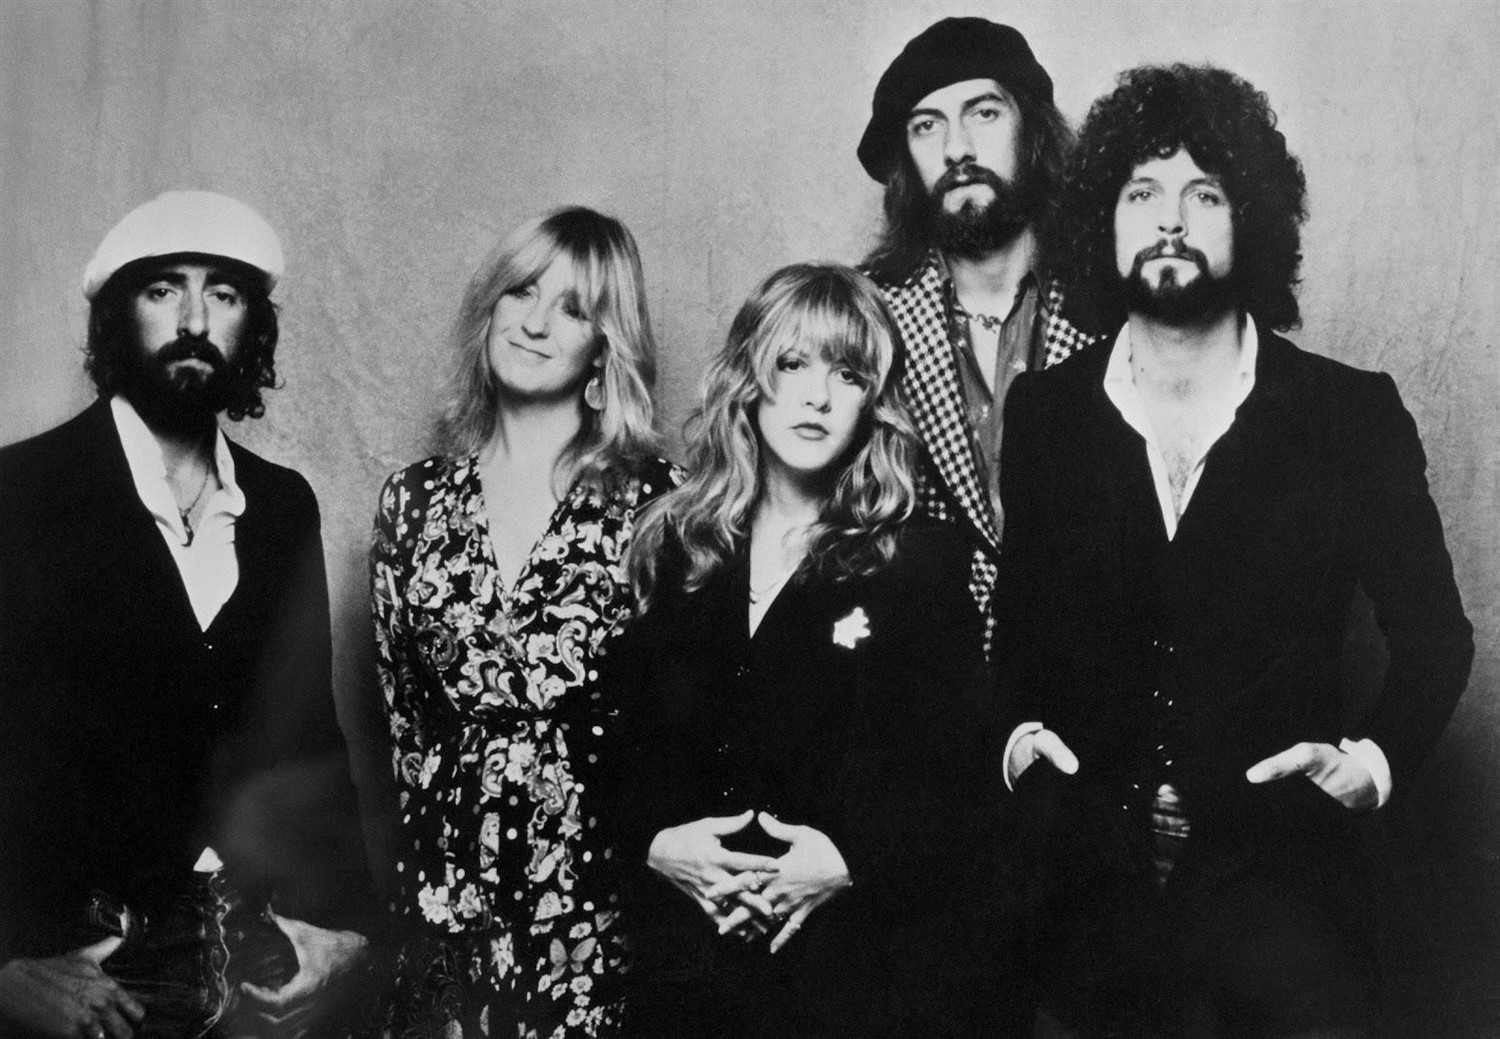 Fleetwood Max - Fleetwood Mac Tribute Night  on Oct 05, 19:30@Beaufort Hotel - Buy tickets and Get information on Concept 2020